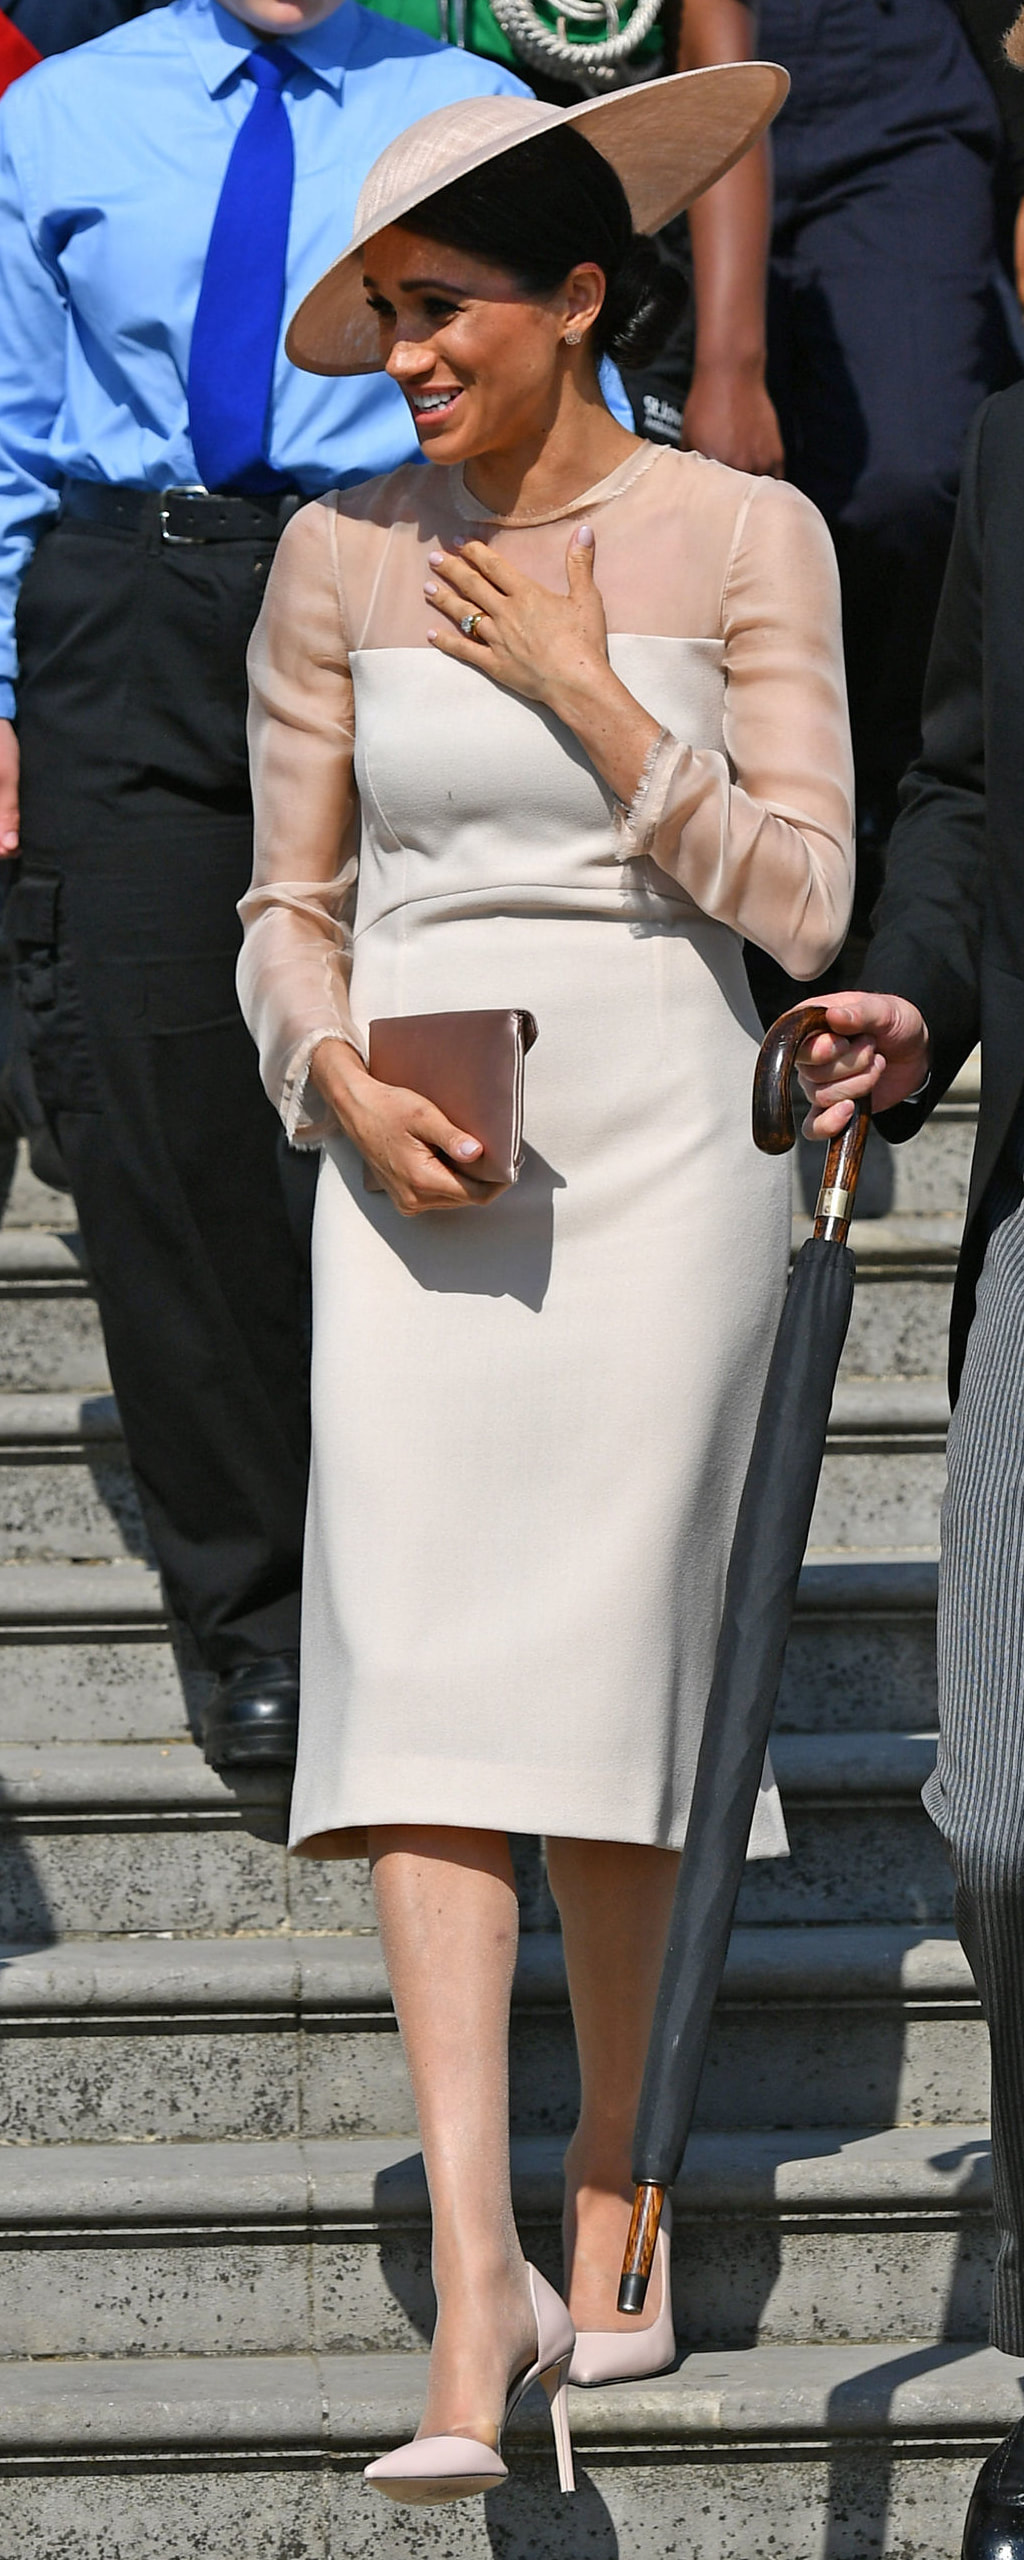 Philip Treacy Dusty Pink Straw Disc Hat as seen on Meghan Markle at Buckingham Palace garden party 2018